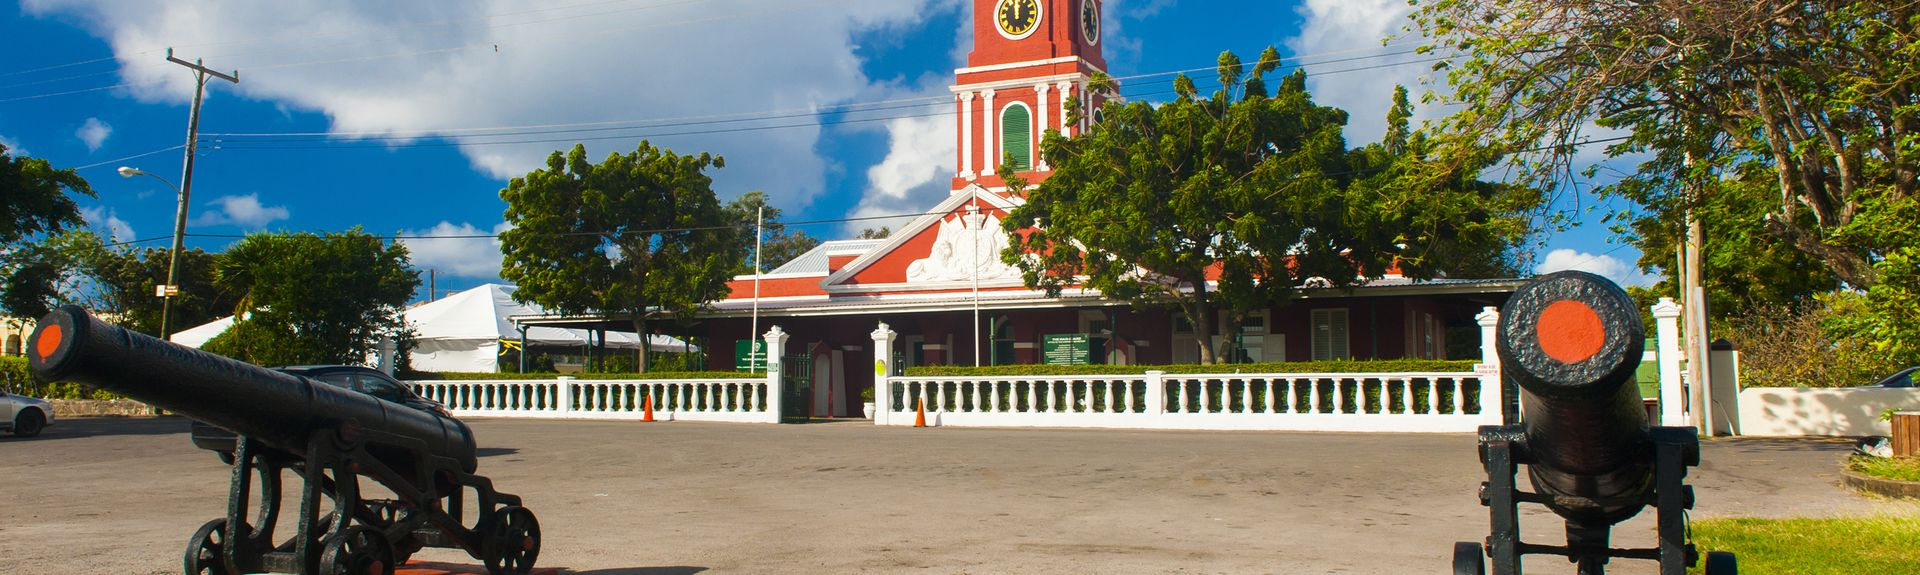 Hastings, Christ Church, Barbados